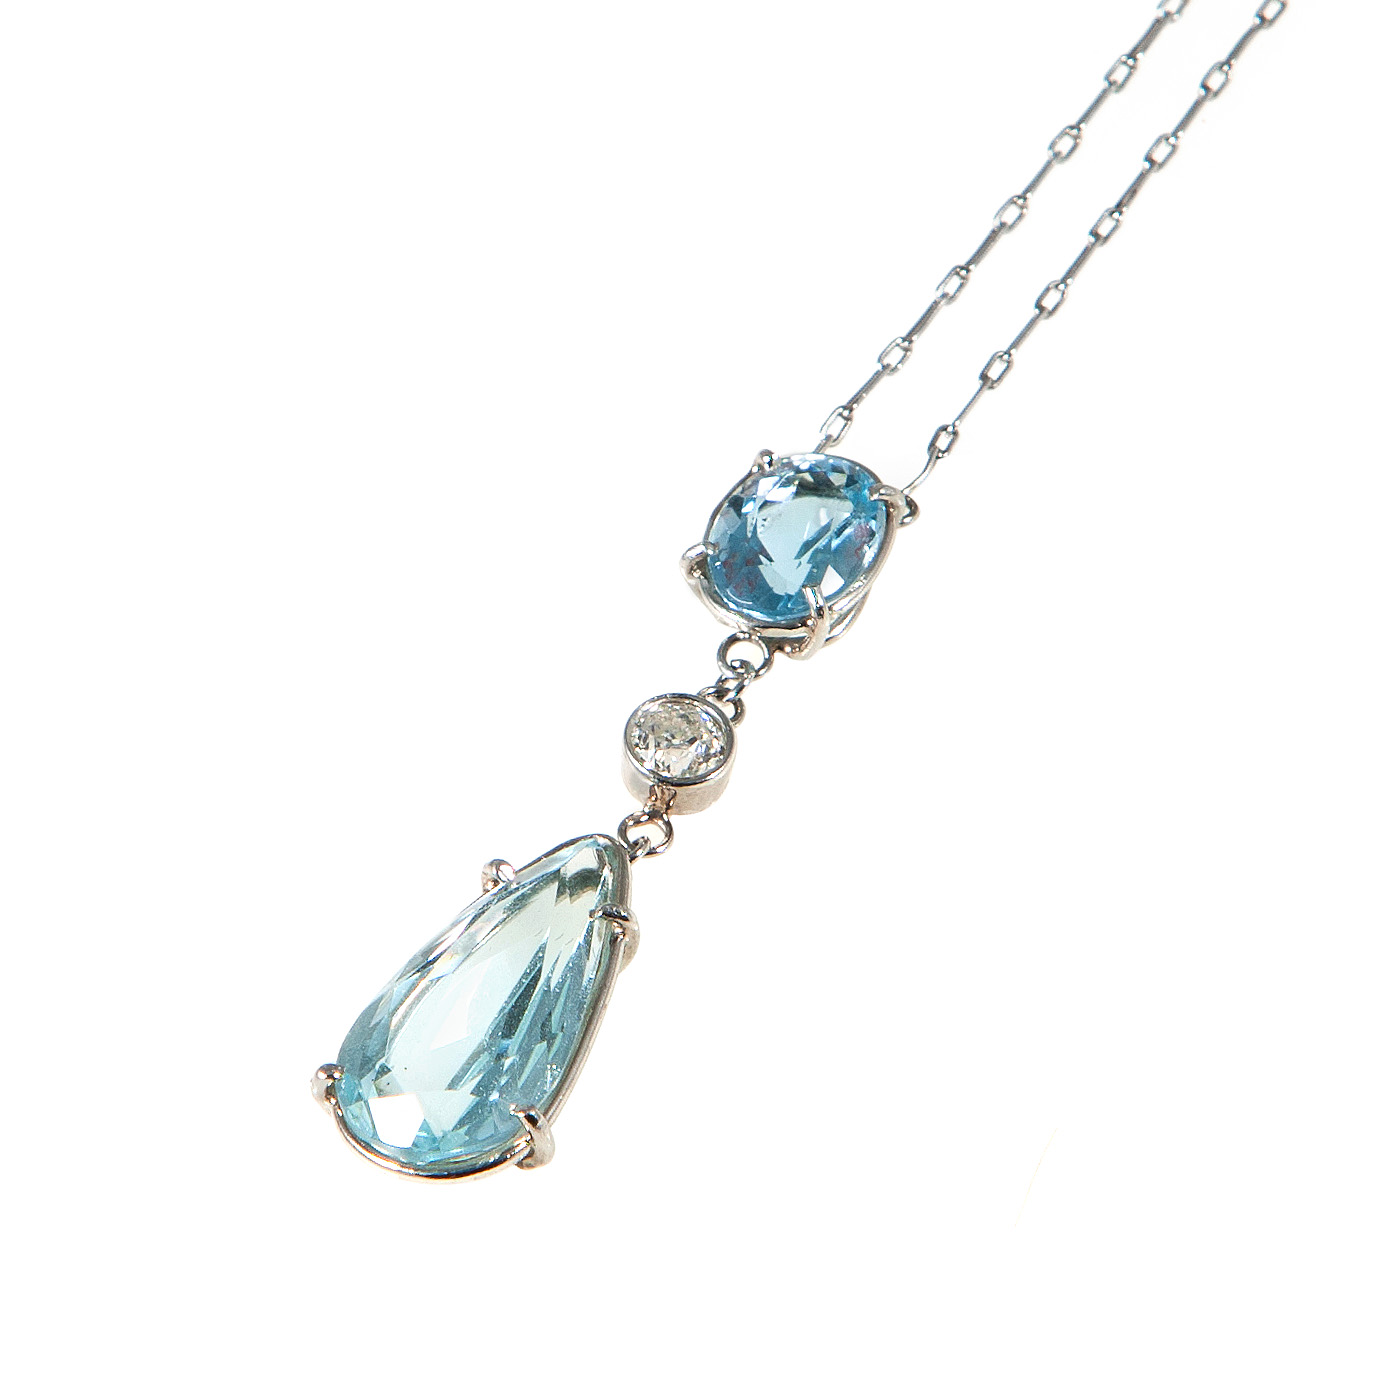 edwardian platinum aquamarine pendant necklace